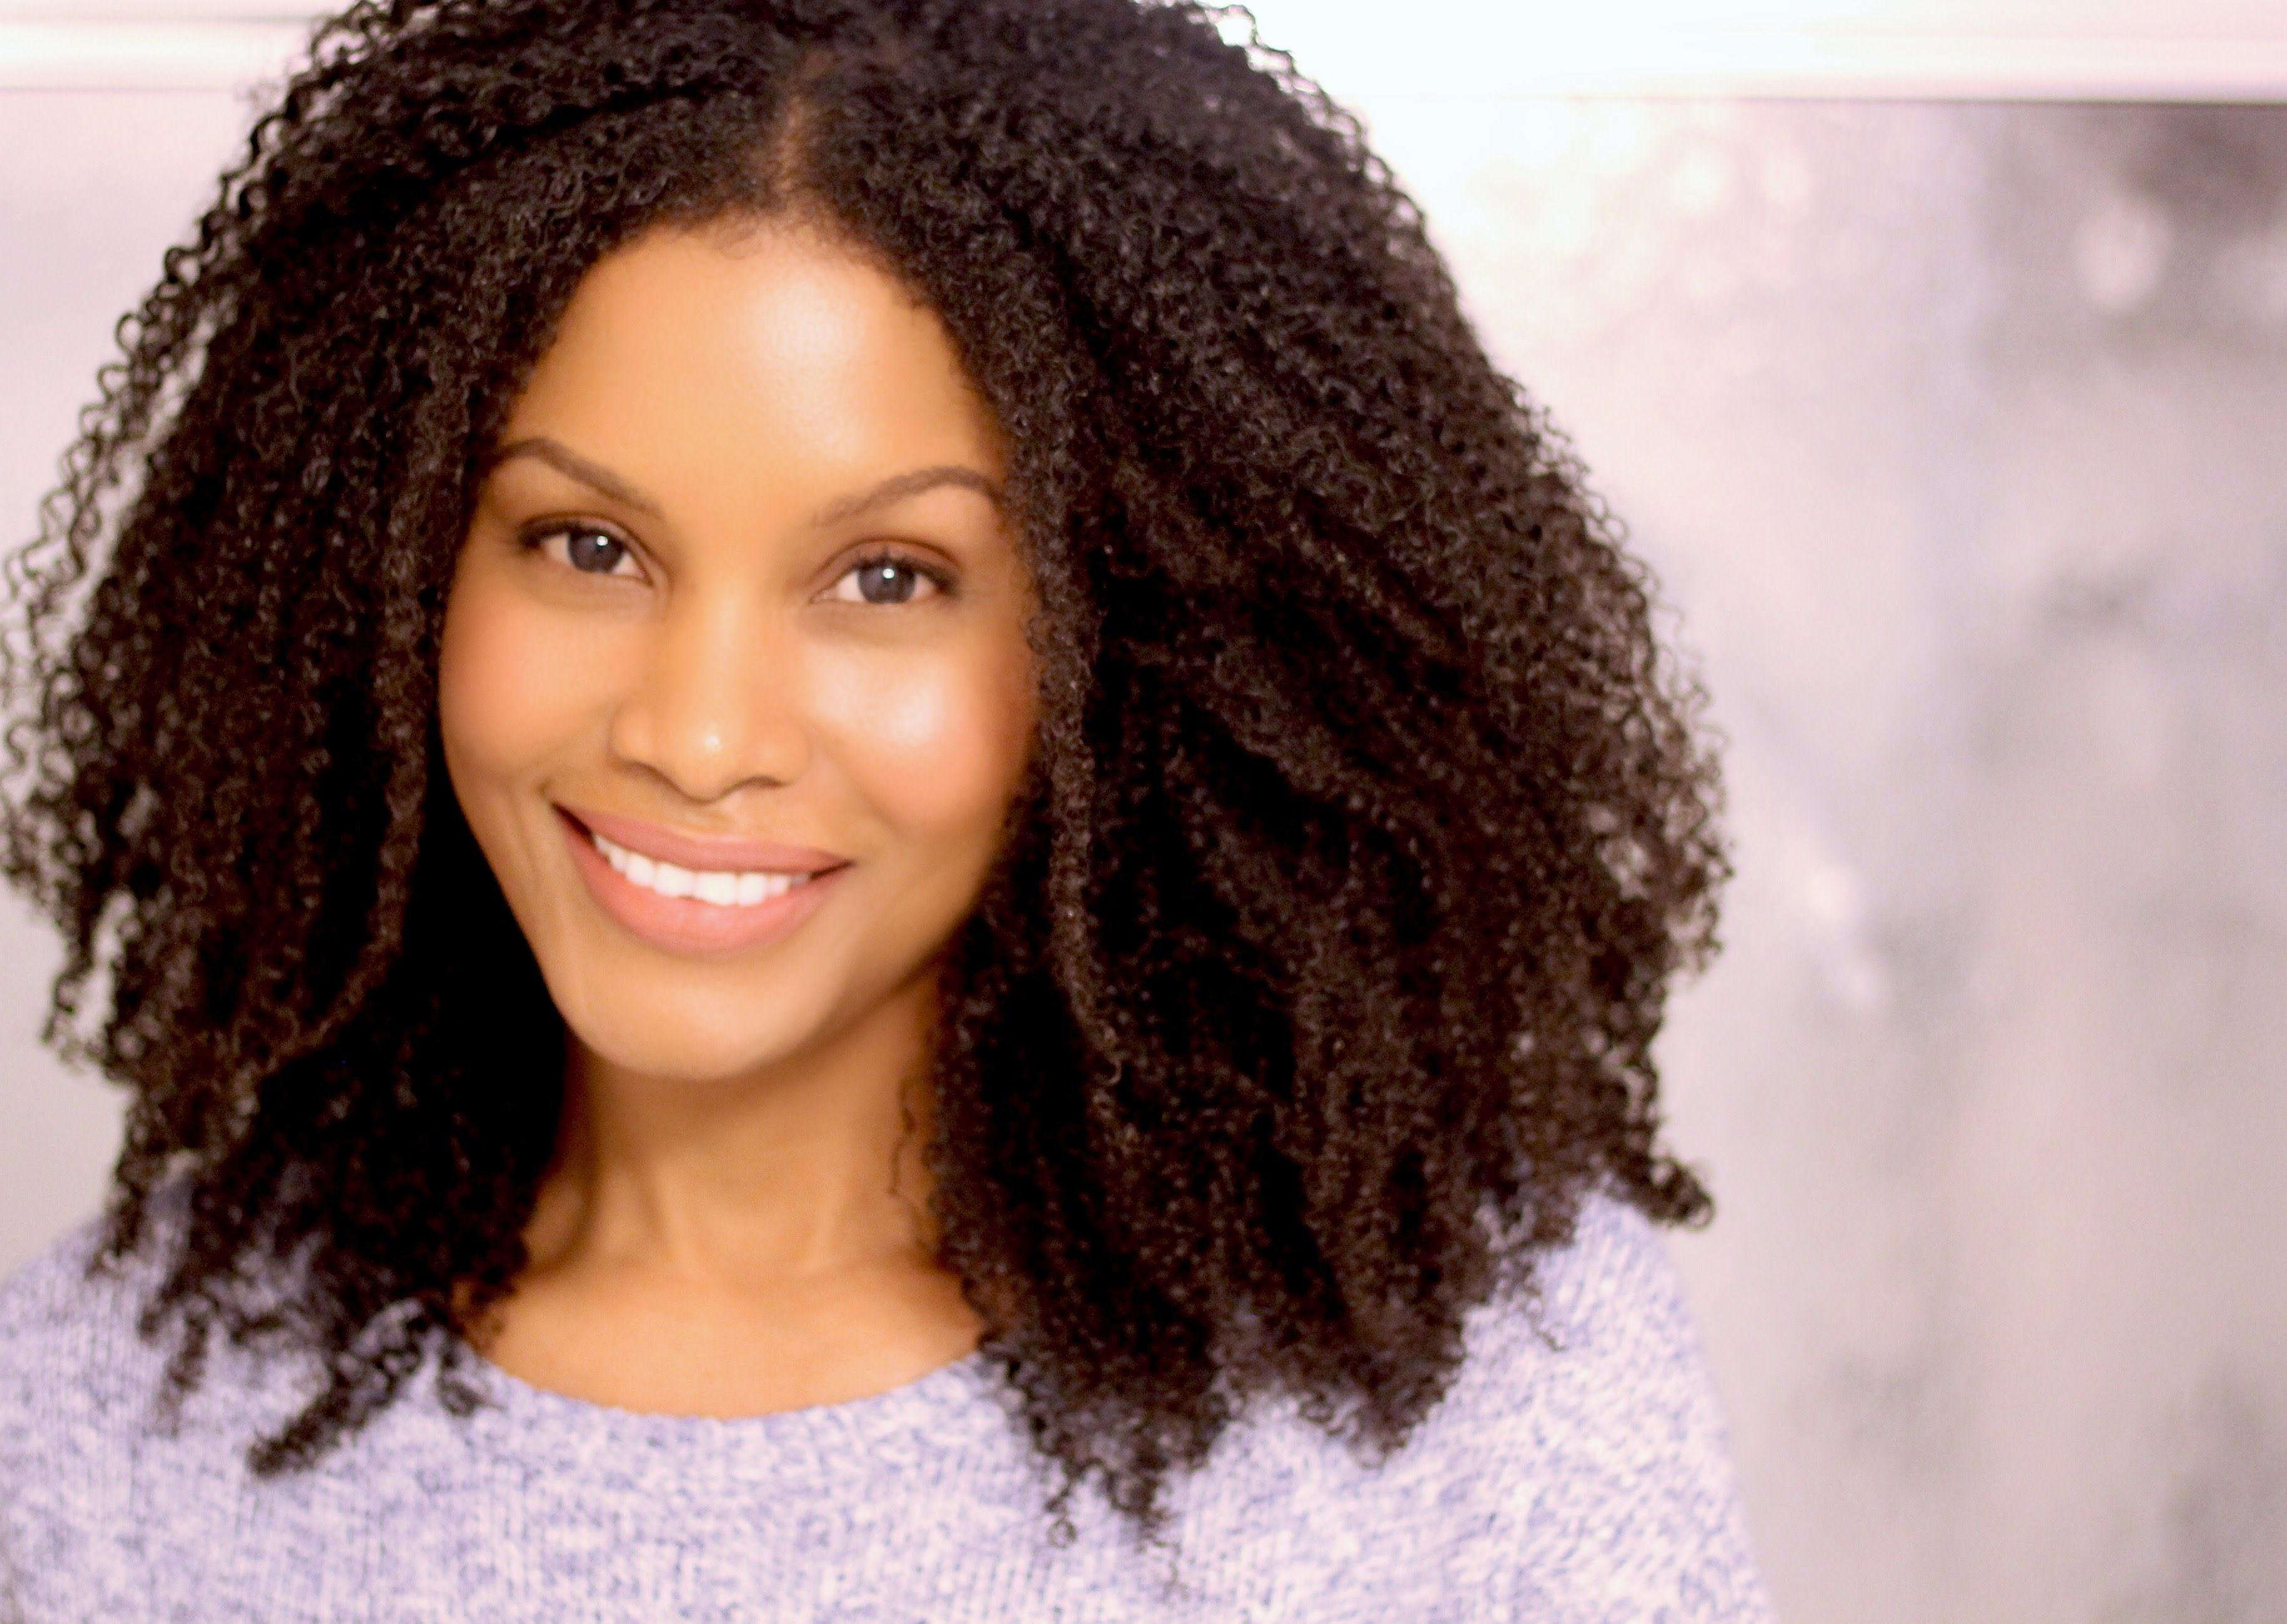 Best Wash And Go Ever Update 3c 4a Hair Type Natural Hair Styles Natural Hair Routine 4a Hair Type